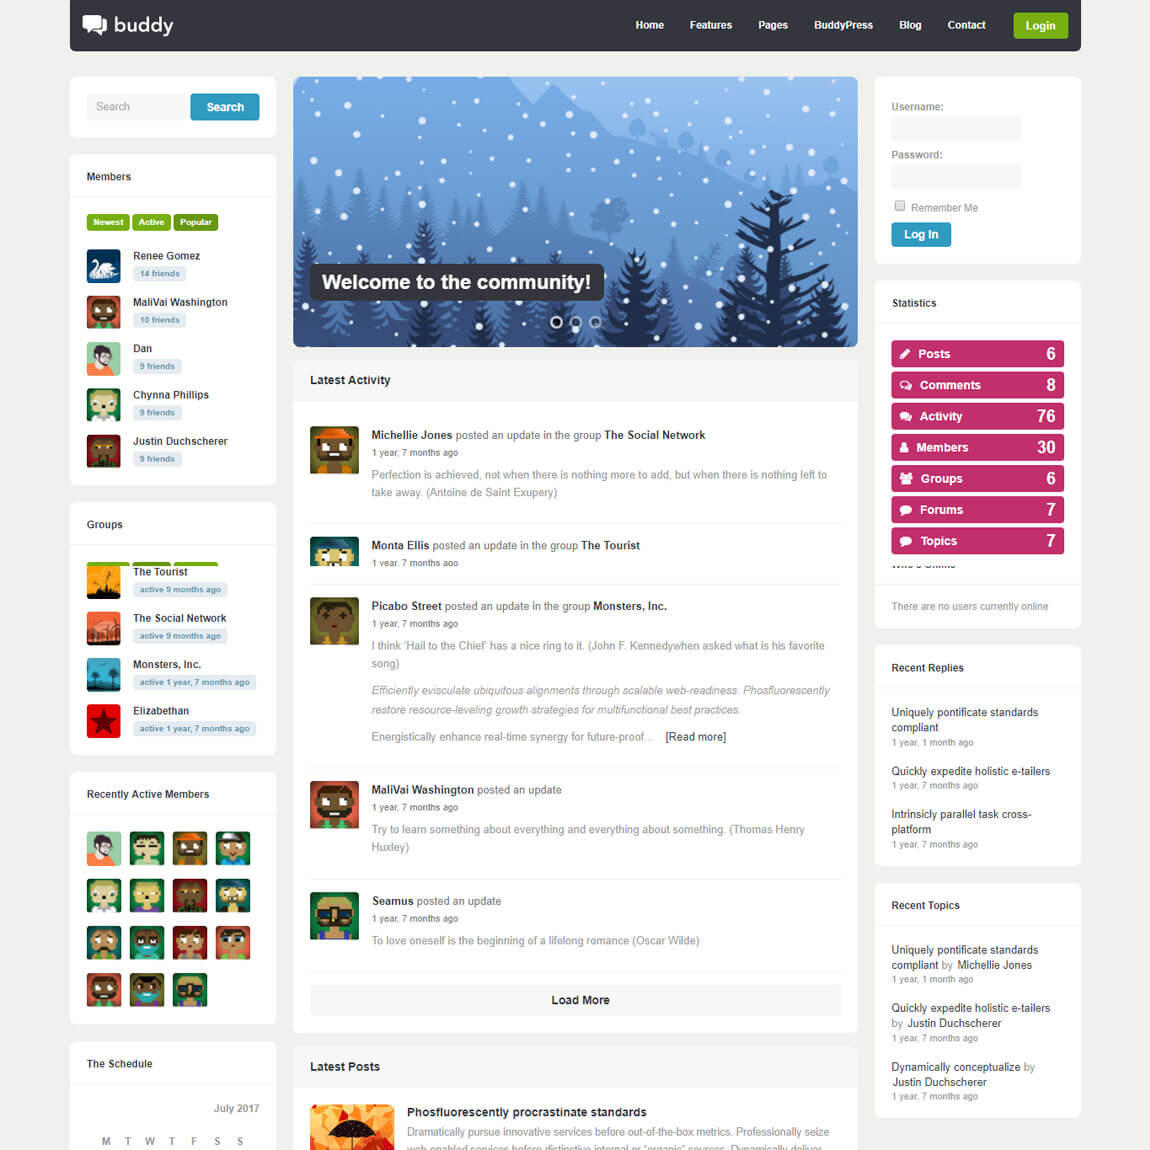 10 Best BuddyPress Themes for Community Sites (Plus bbPress)